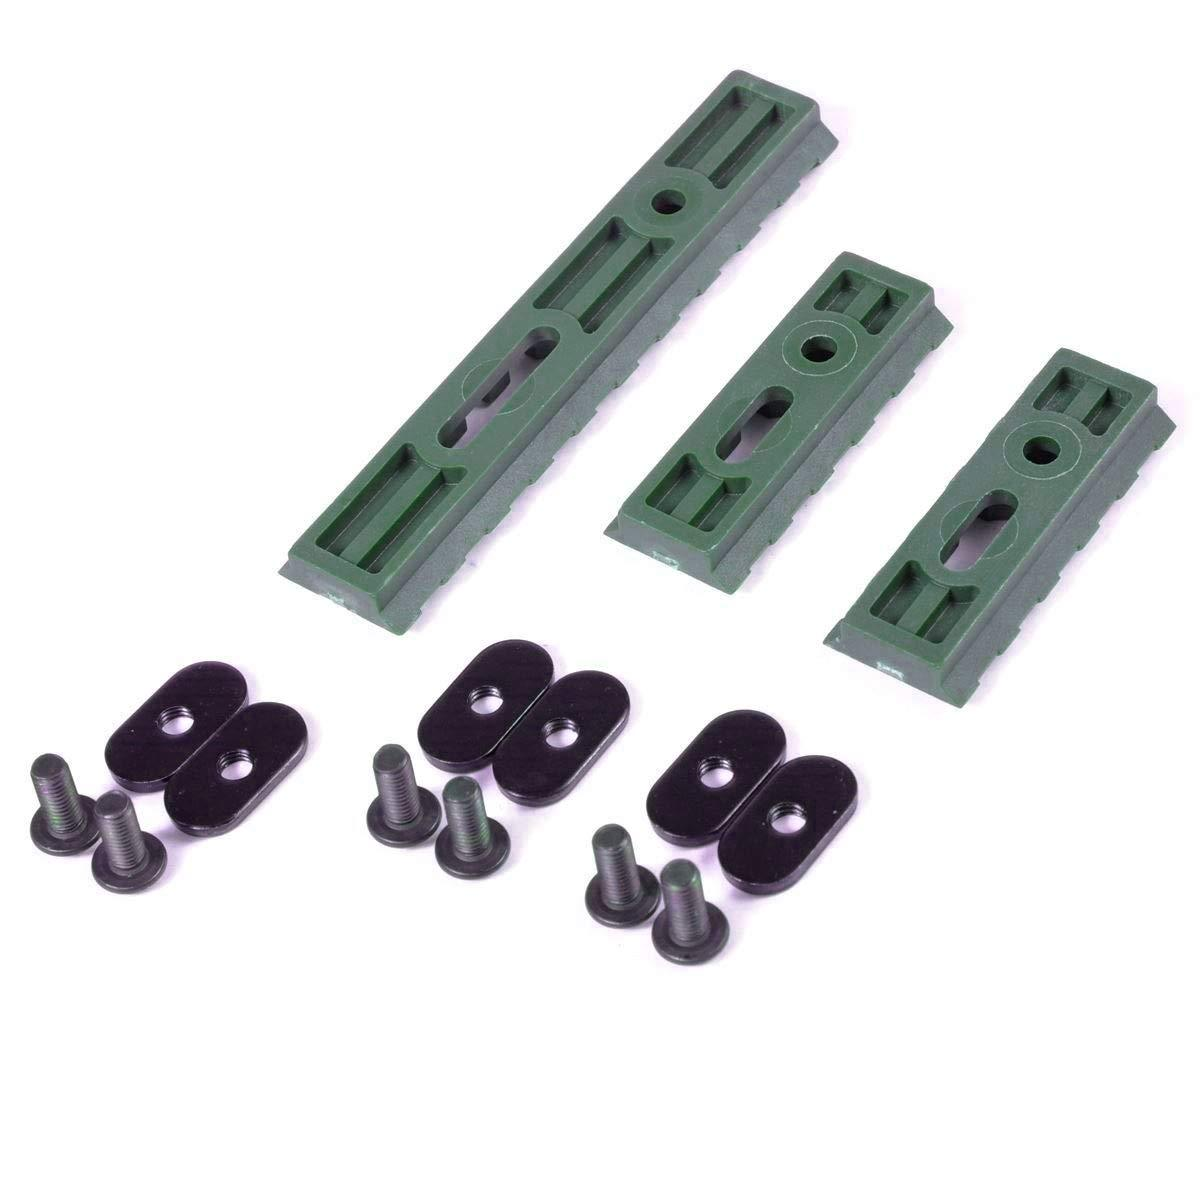 Olive Drab Green Slotted Polymer Picatinny Rail Set for Handguards Rails Green Blob Outdoors